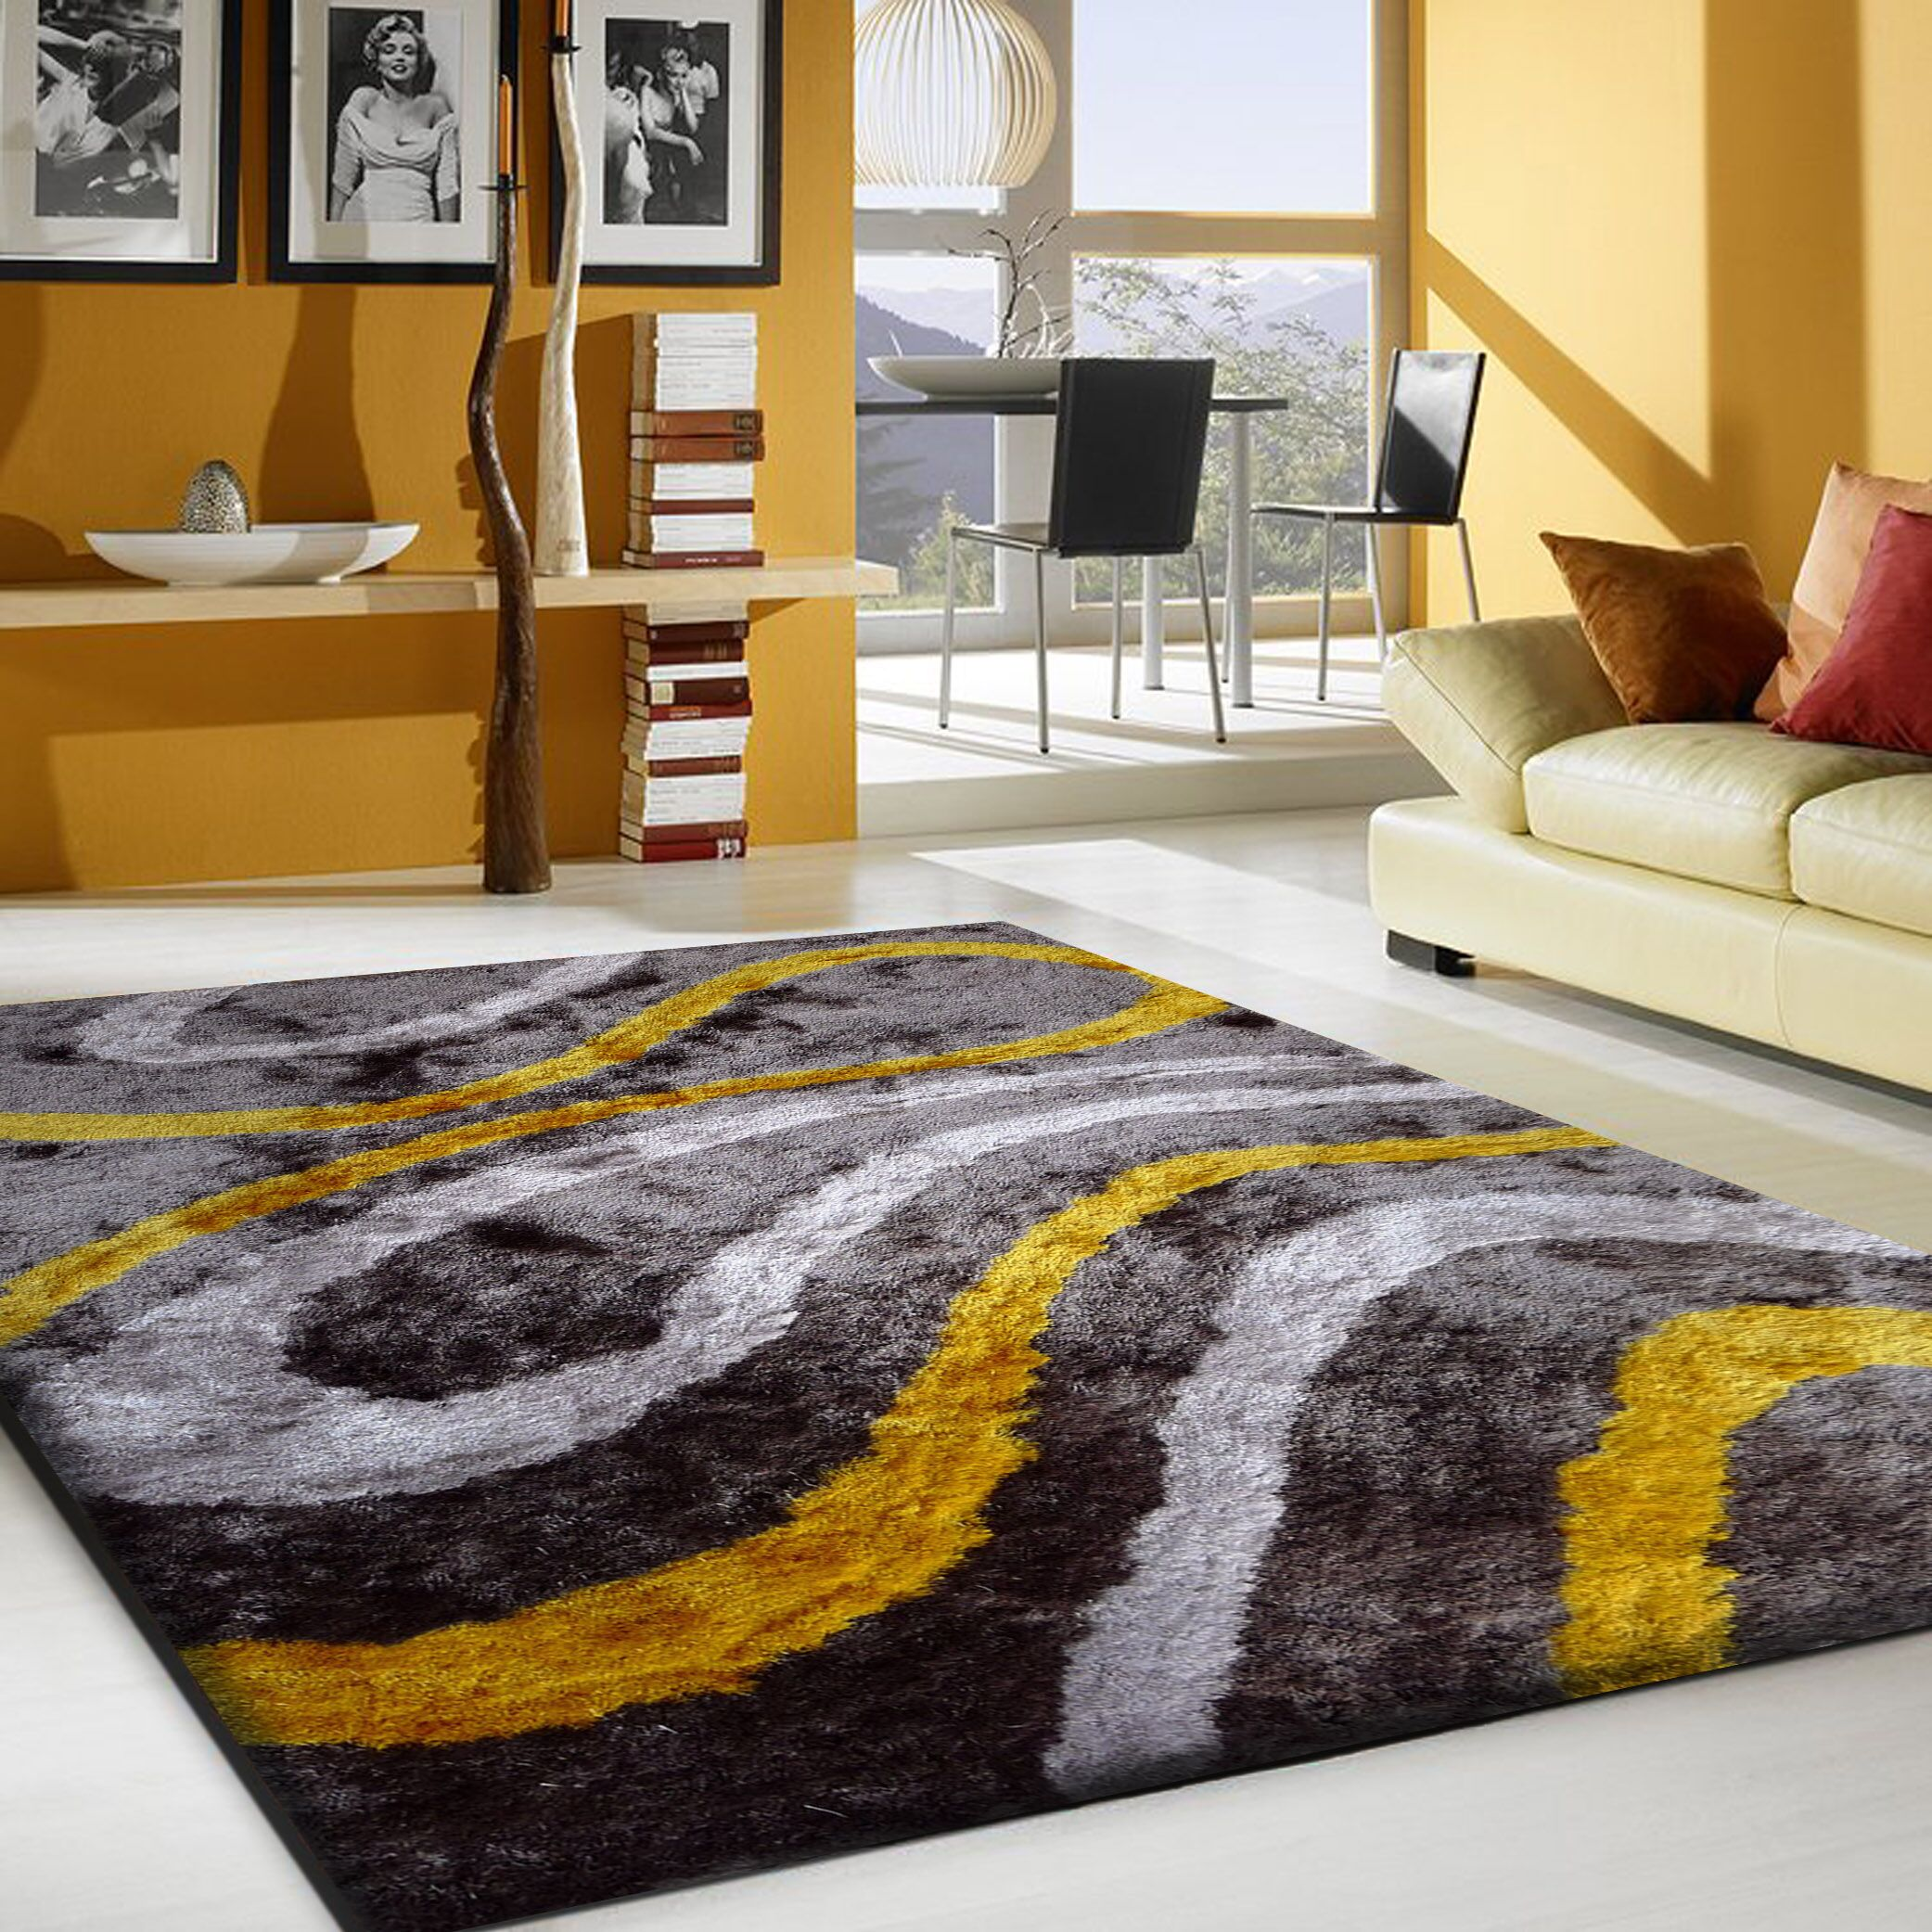 San Michele Hand Tufted Gray/Yellow Area Rug Rug Size: Rectangle 4' x 5'4